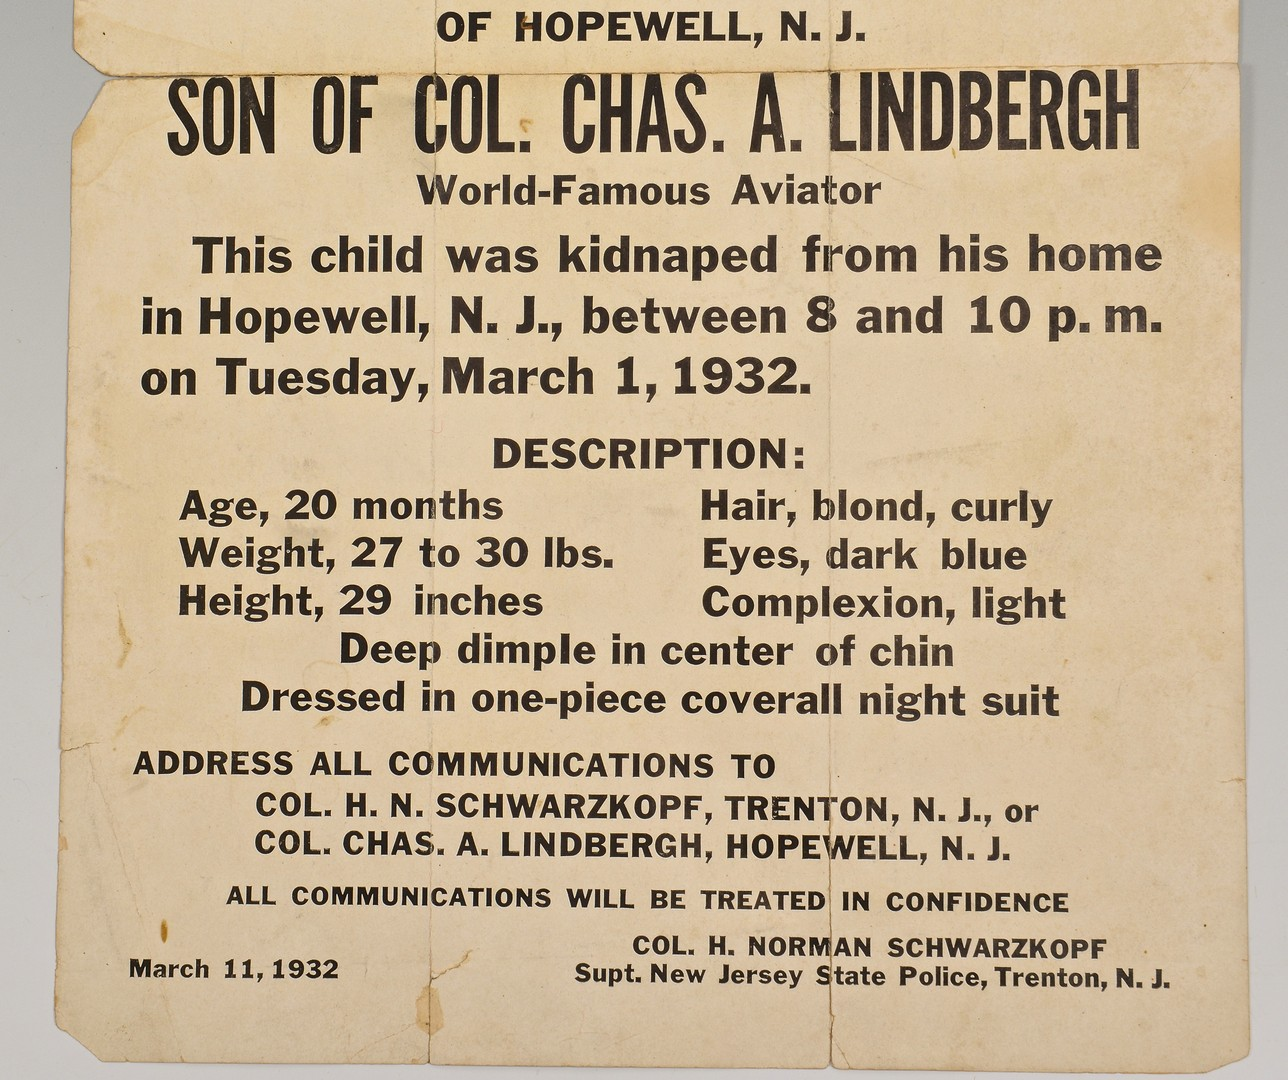 an overview of the lindbergh act enforced in 1932 Kidnapping of charles lindbergh's son newsreel coverage of the 1932 kidnapping of the young son of aviator charles a lindbergh stock footage courtesy the wpa film library charles lindbergh testifying at the murder trial of bruno hauptmann, january 1935.